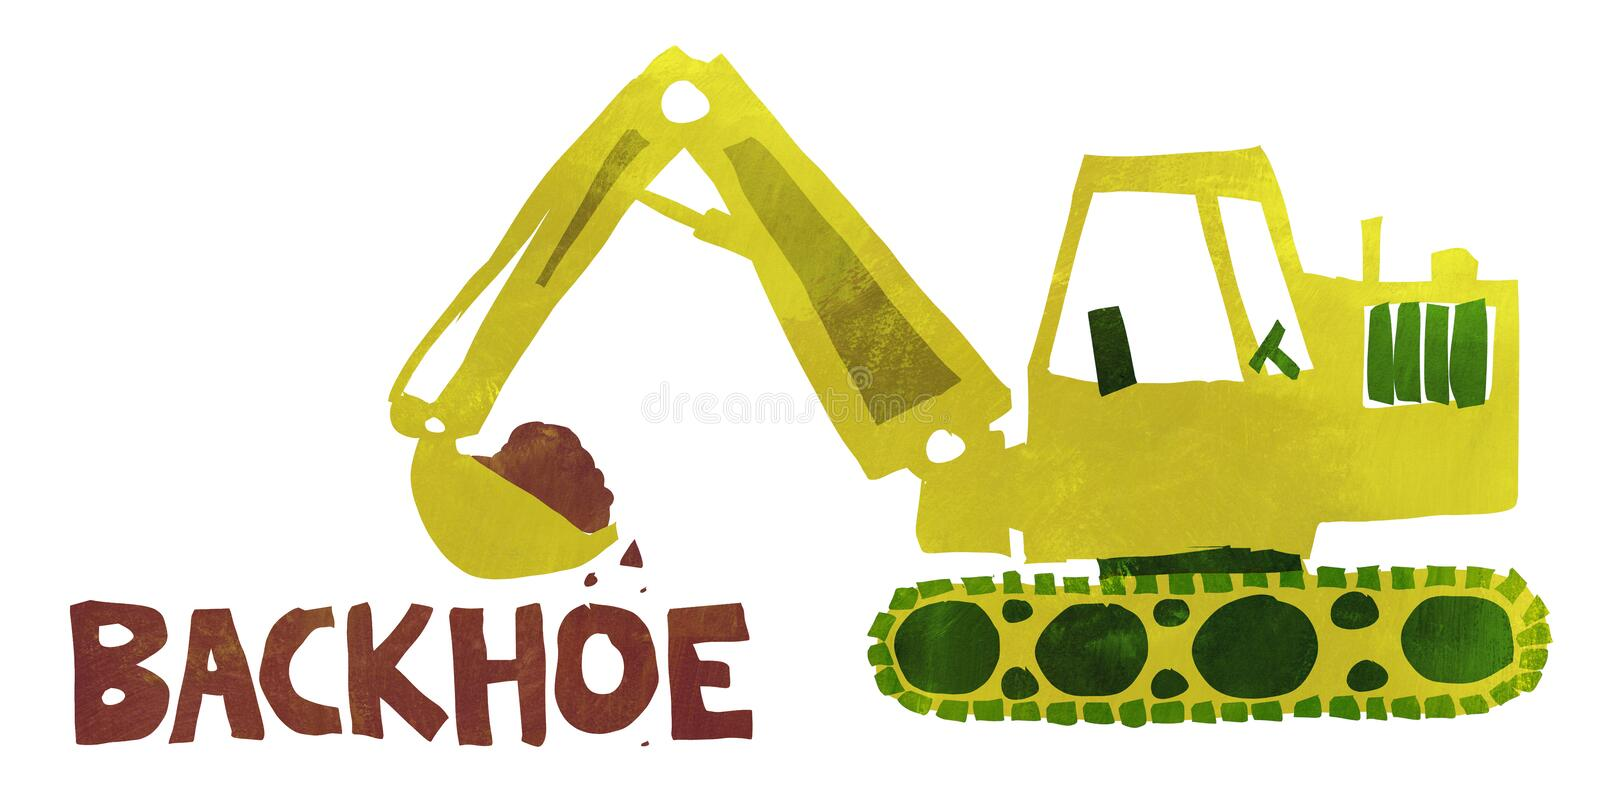 Backhoe. Illustration of a backhoe in a simple flat textured style vector illustration